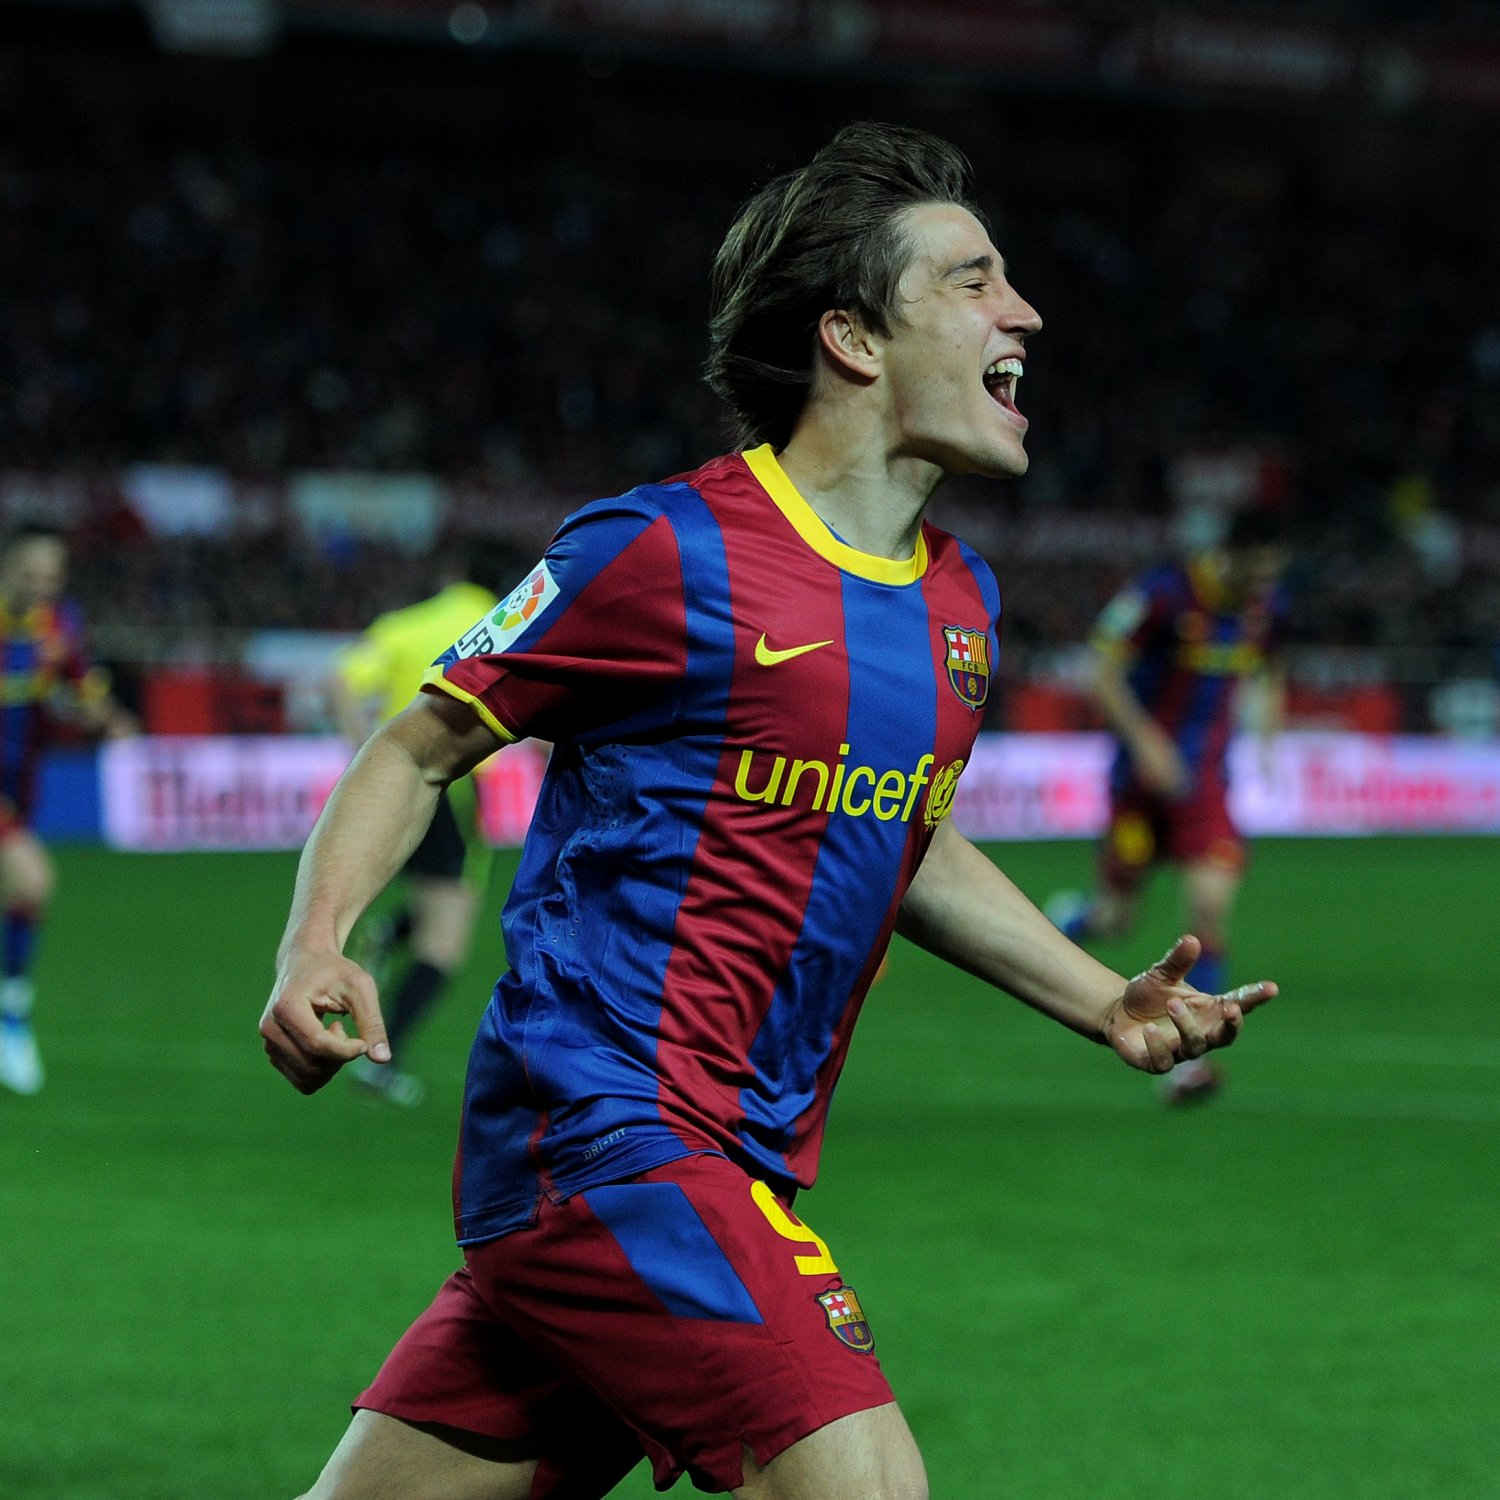 Motivational Quotes For Sports Teams: Former Barcelona Players Who May One Day Return To The